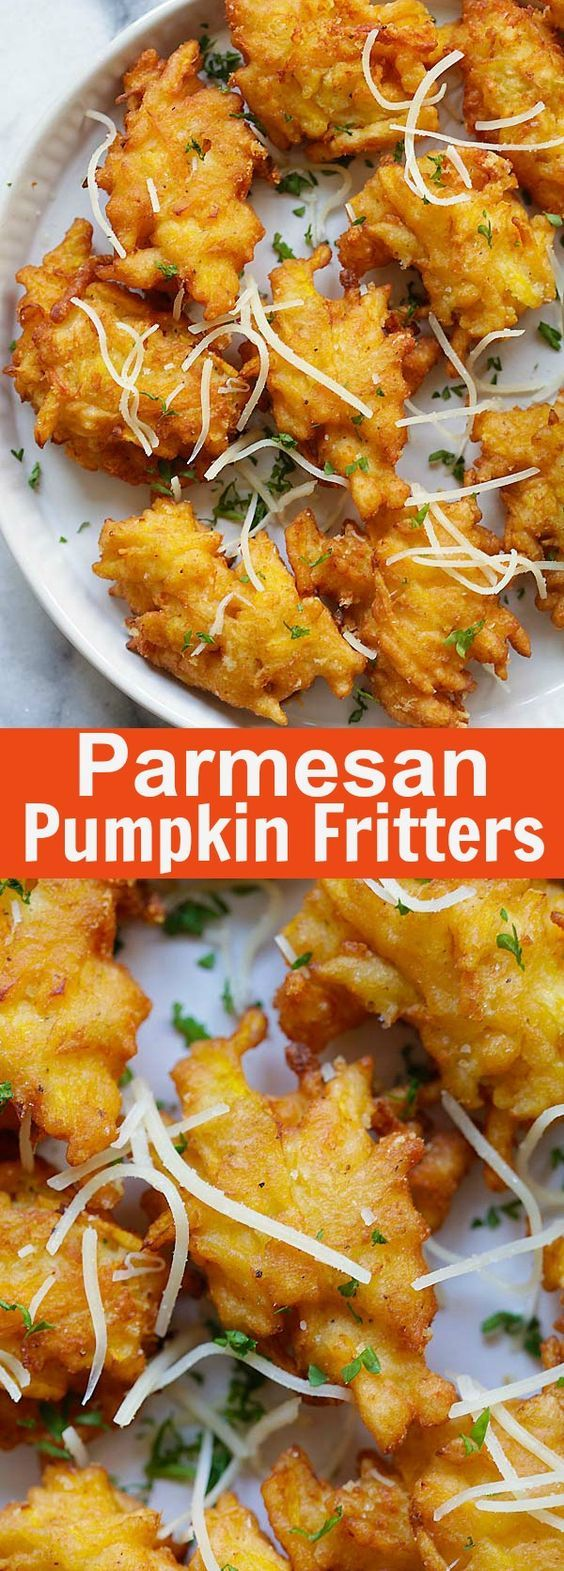 Parmesan Pumpkin Fritters - crazy delicious pumpkin fritters recipe with Parmesan cheese. Easy, fail-proof and takes only 20 mins | rasamalaysia.com